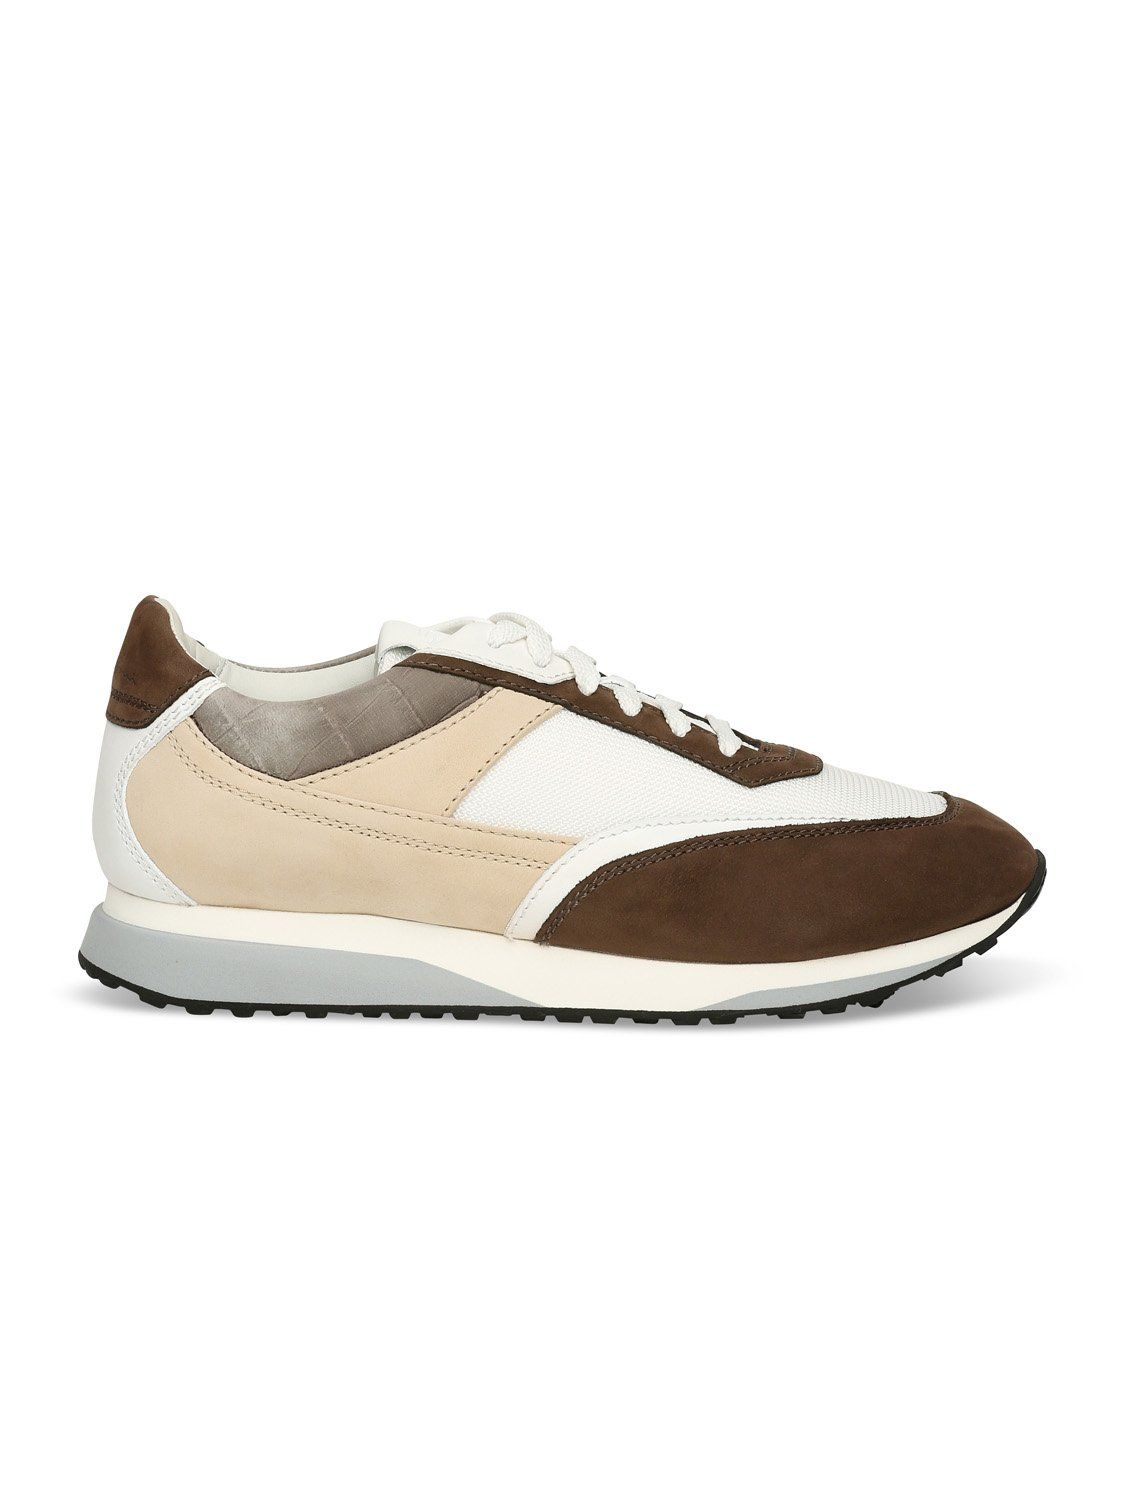 Santoni Contrast Trainer (White / Brown) UK 7 / EU 40-41